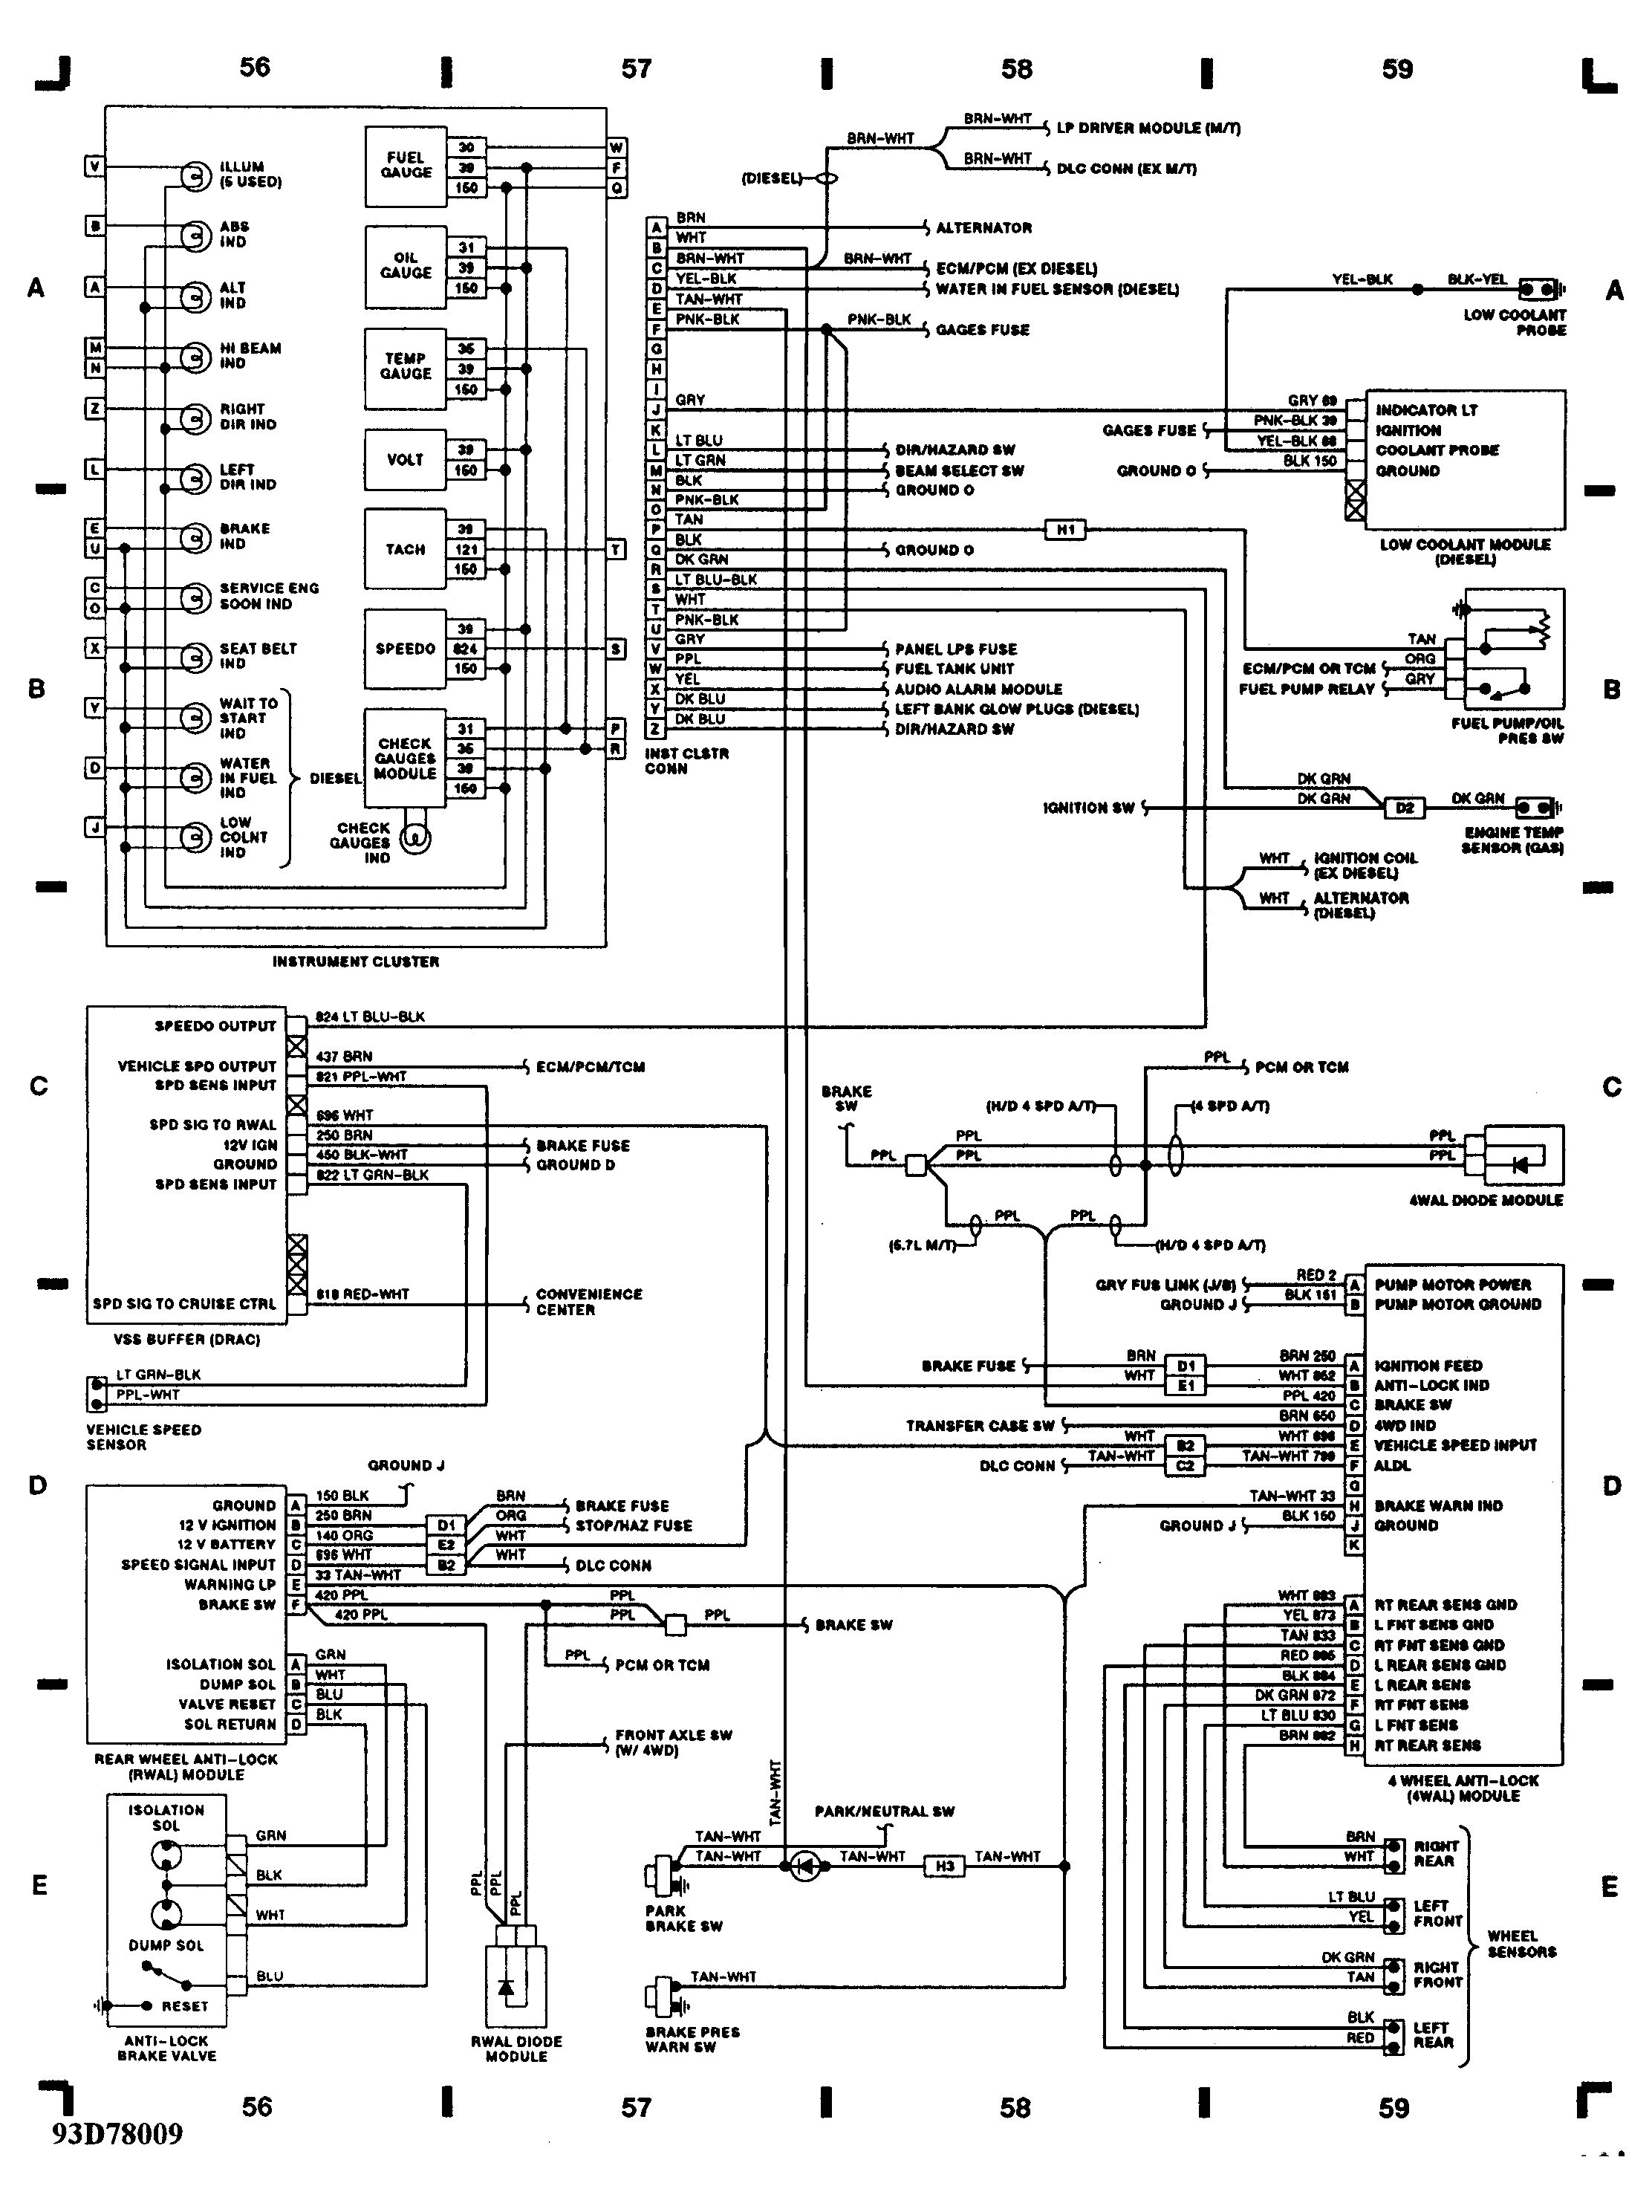 Ford Mustang Engine Diagram 1965 Mustang Engine Wiring Diagram ford 3 Speed Rebuilt Manual Of Ford Mustang Engine Diagram